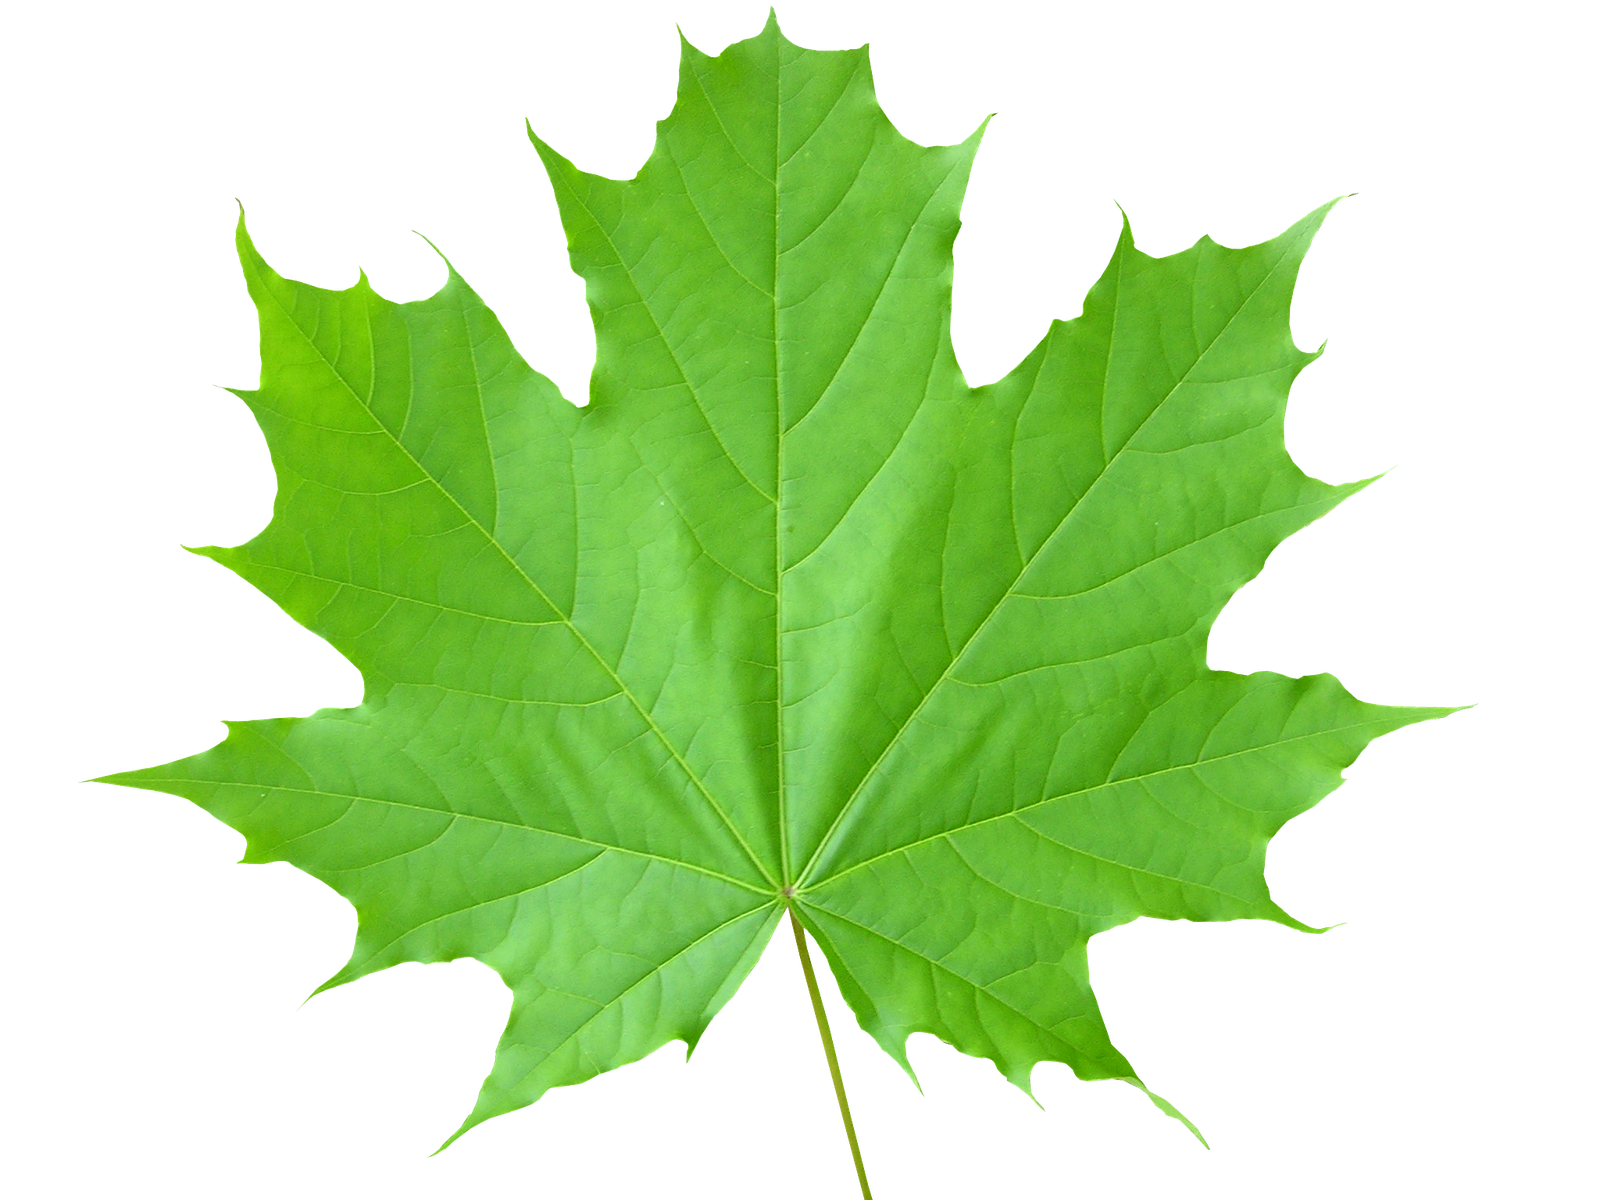 Green leafs png. Leaves images free download